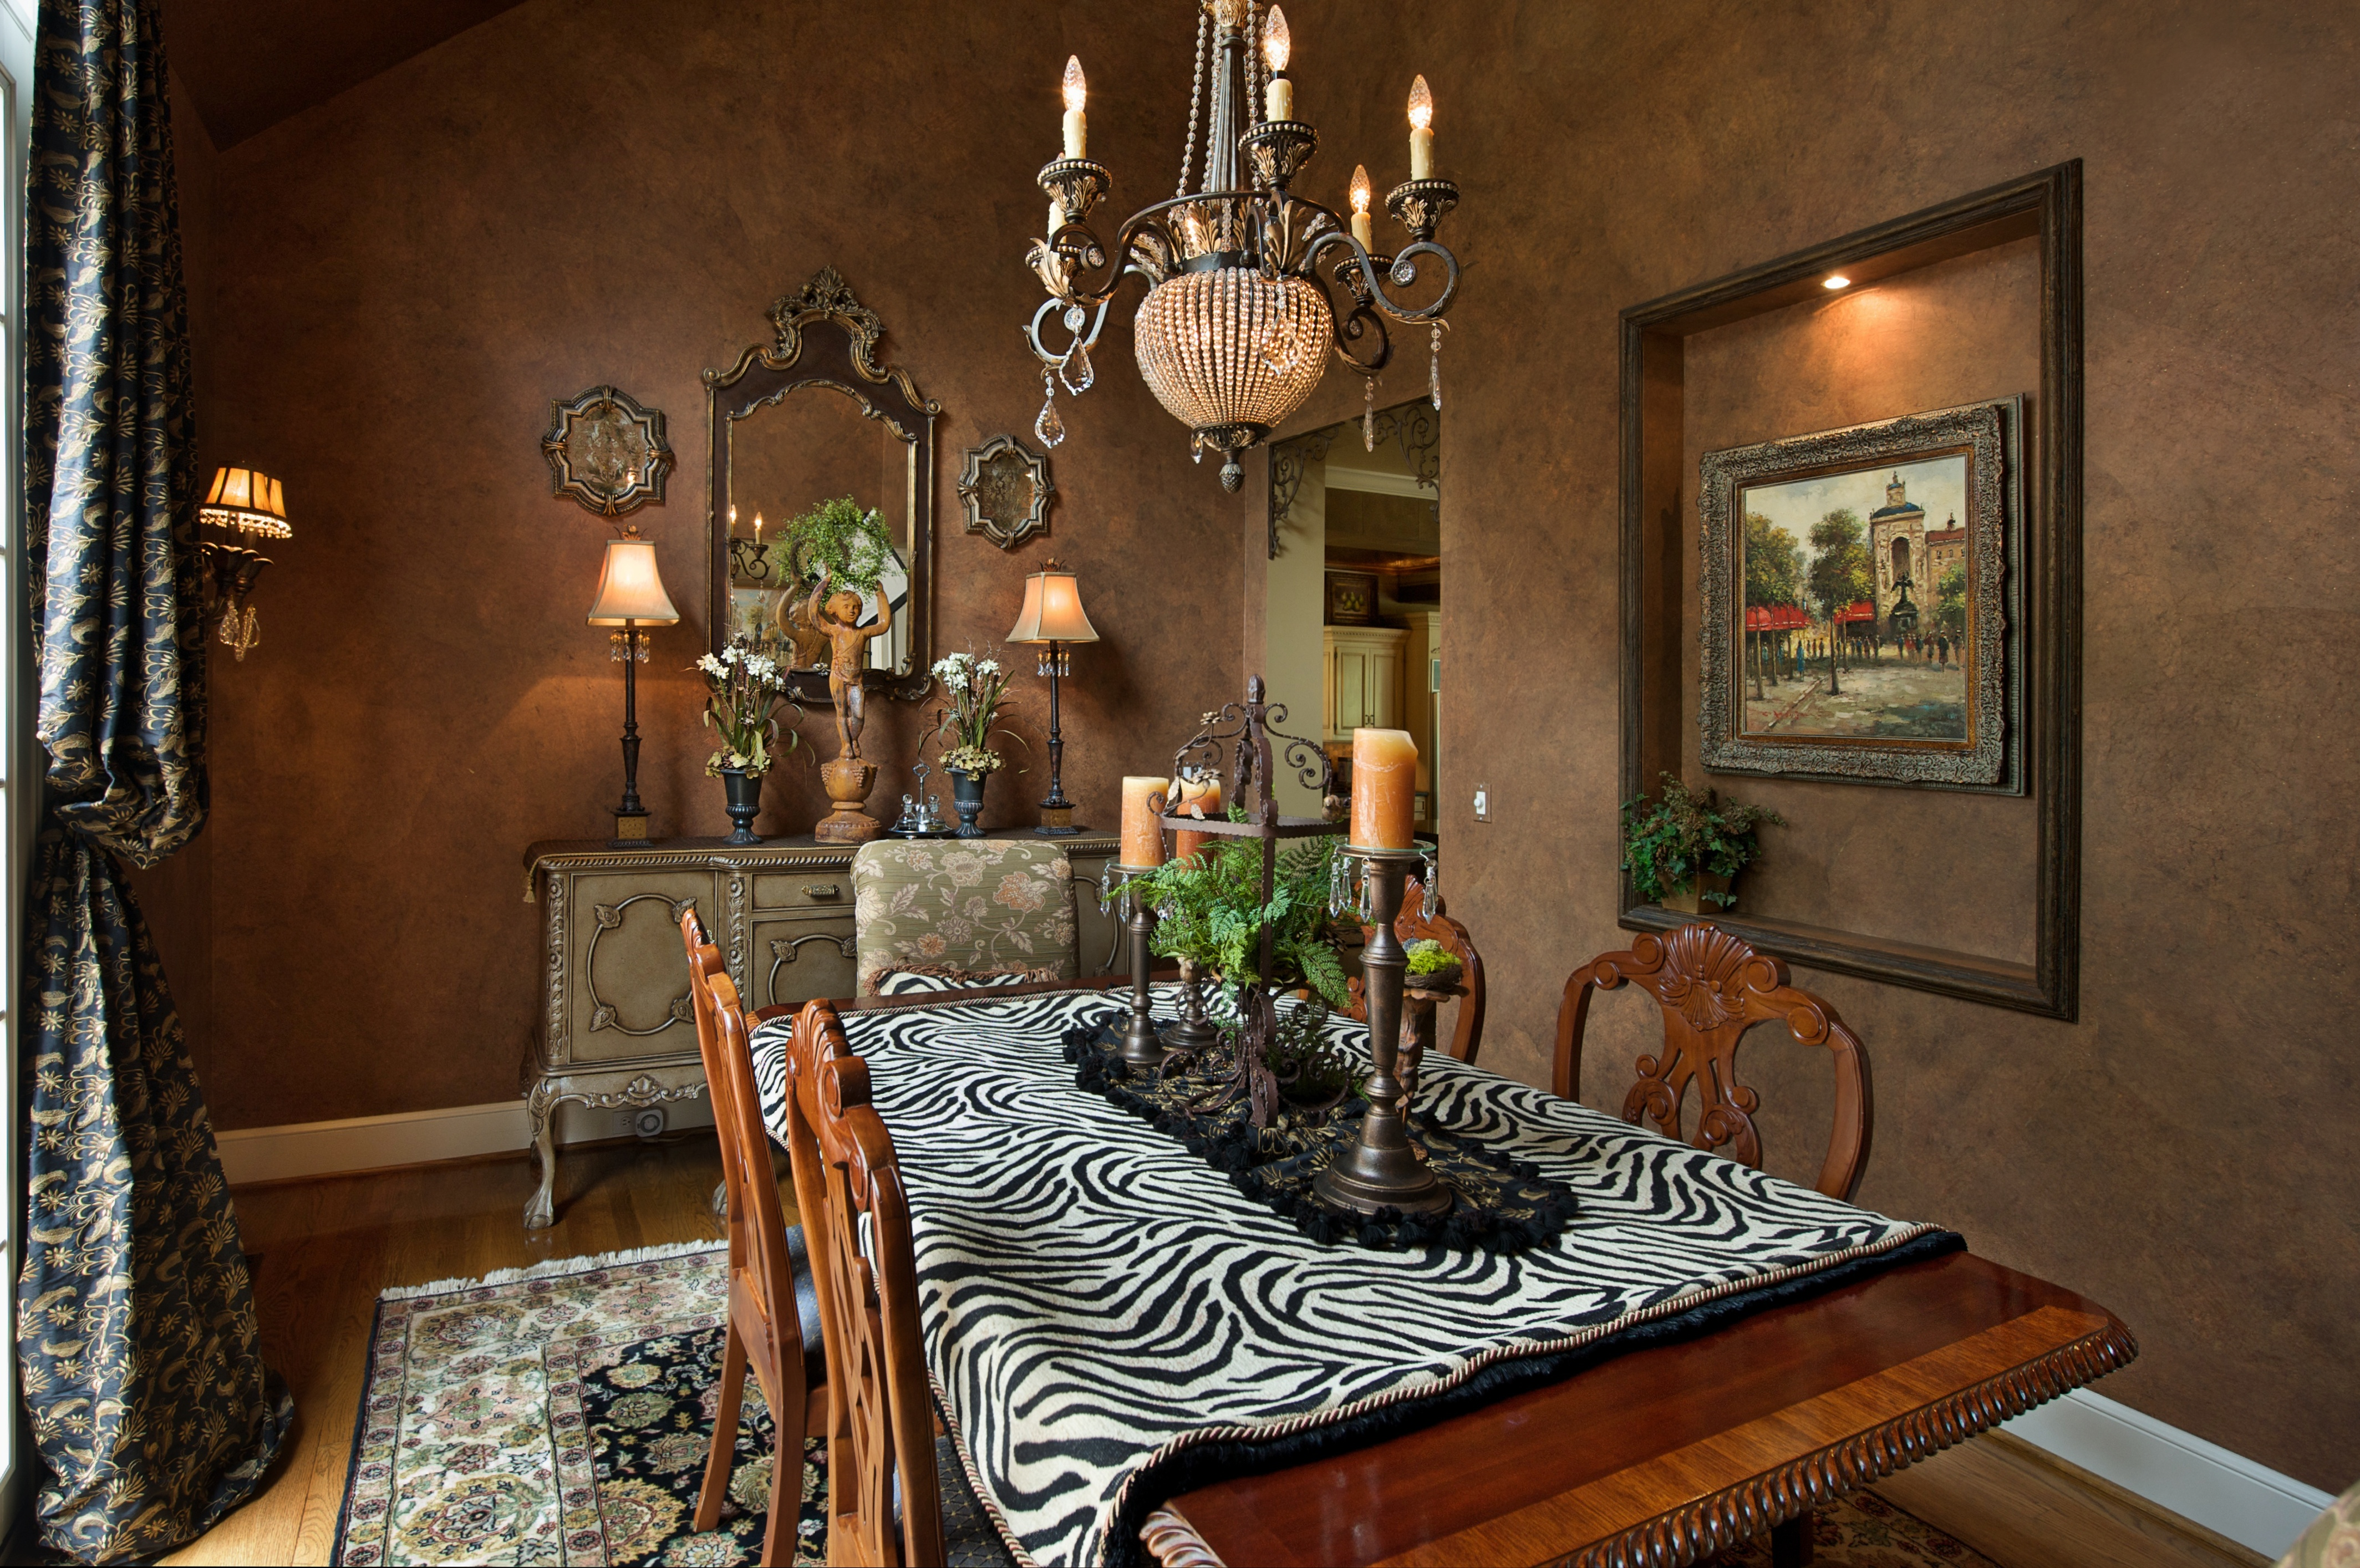 The decorative touch ltd interior design decorating for Interior designer design kansas city